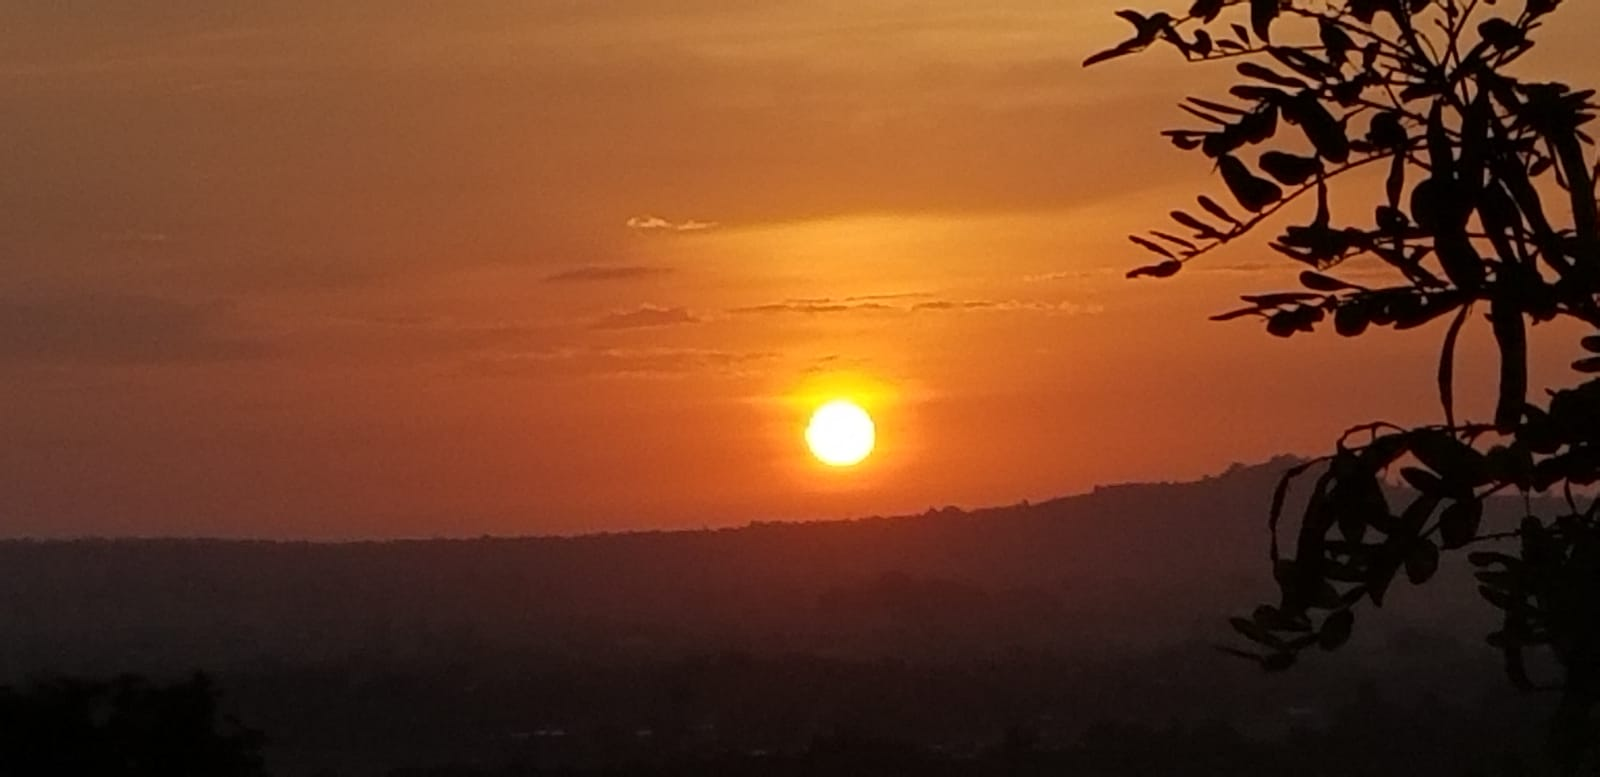 WhatsApp_Image_2020-05-18_at_12.26.17_3.jpeg